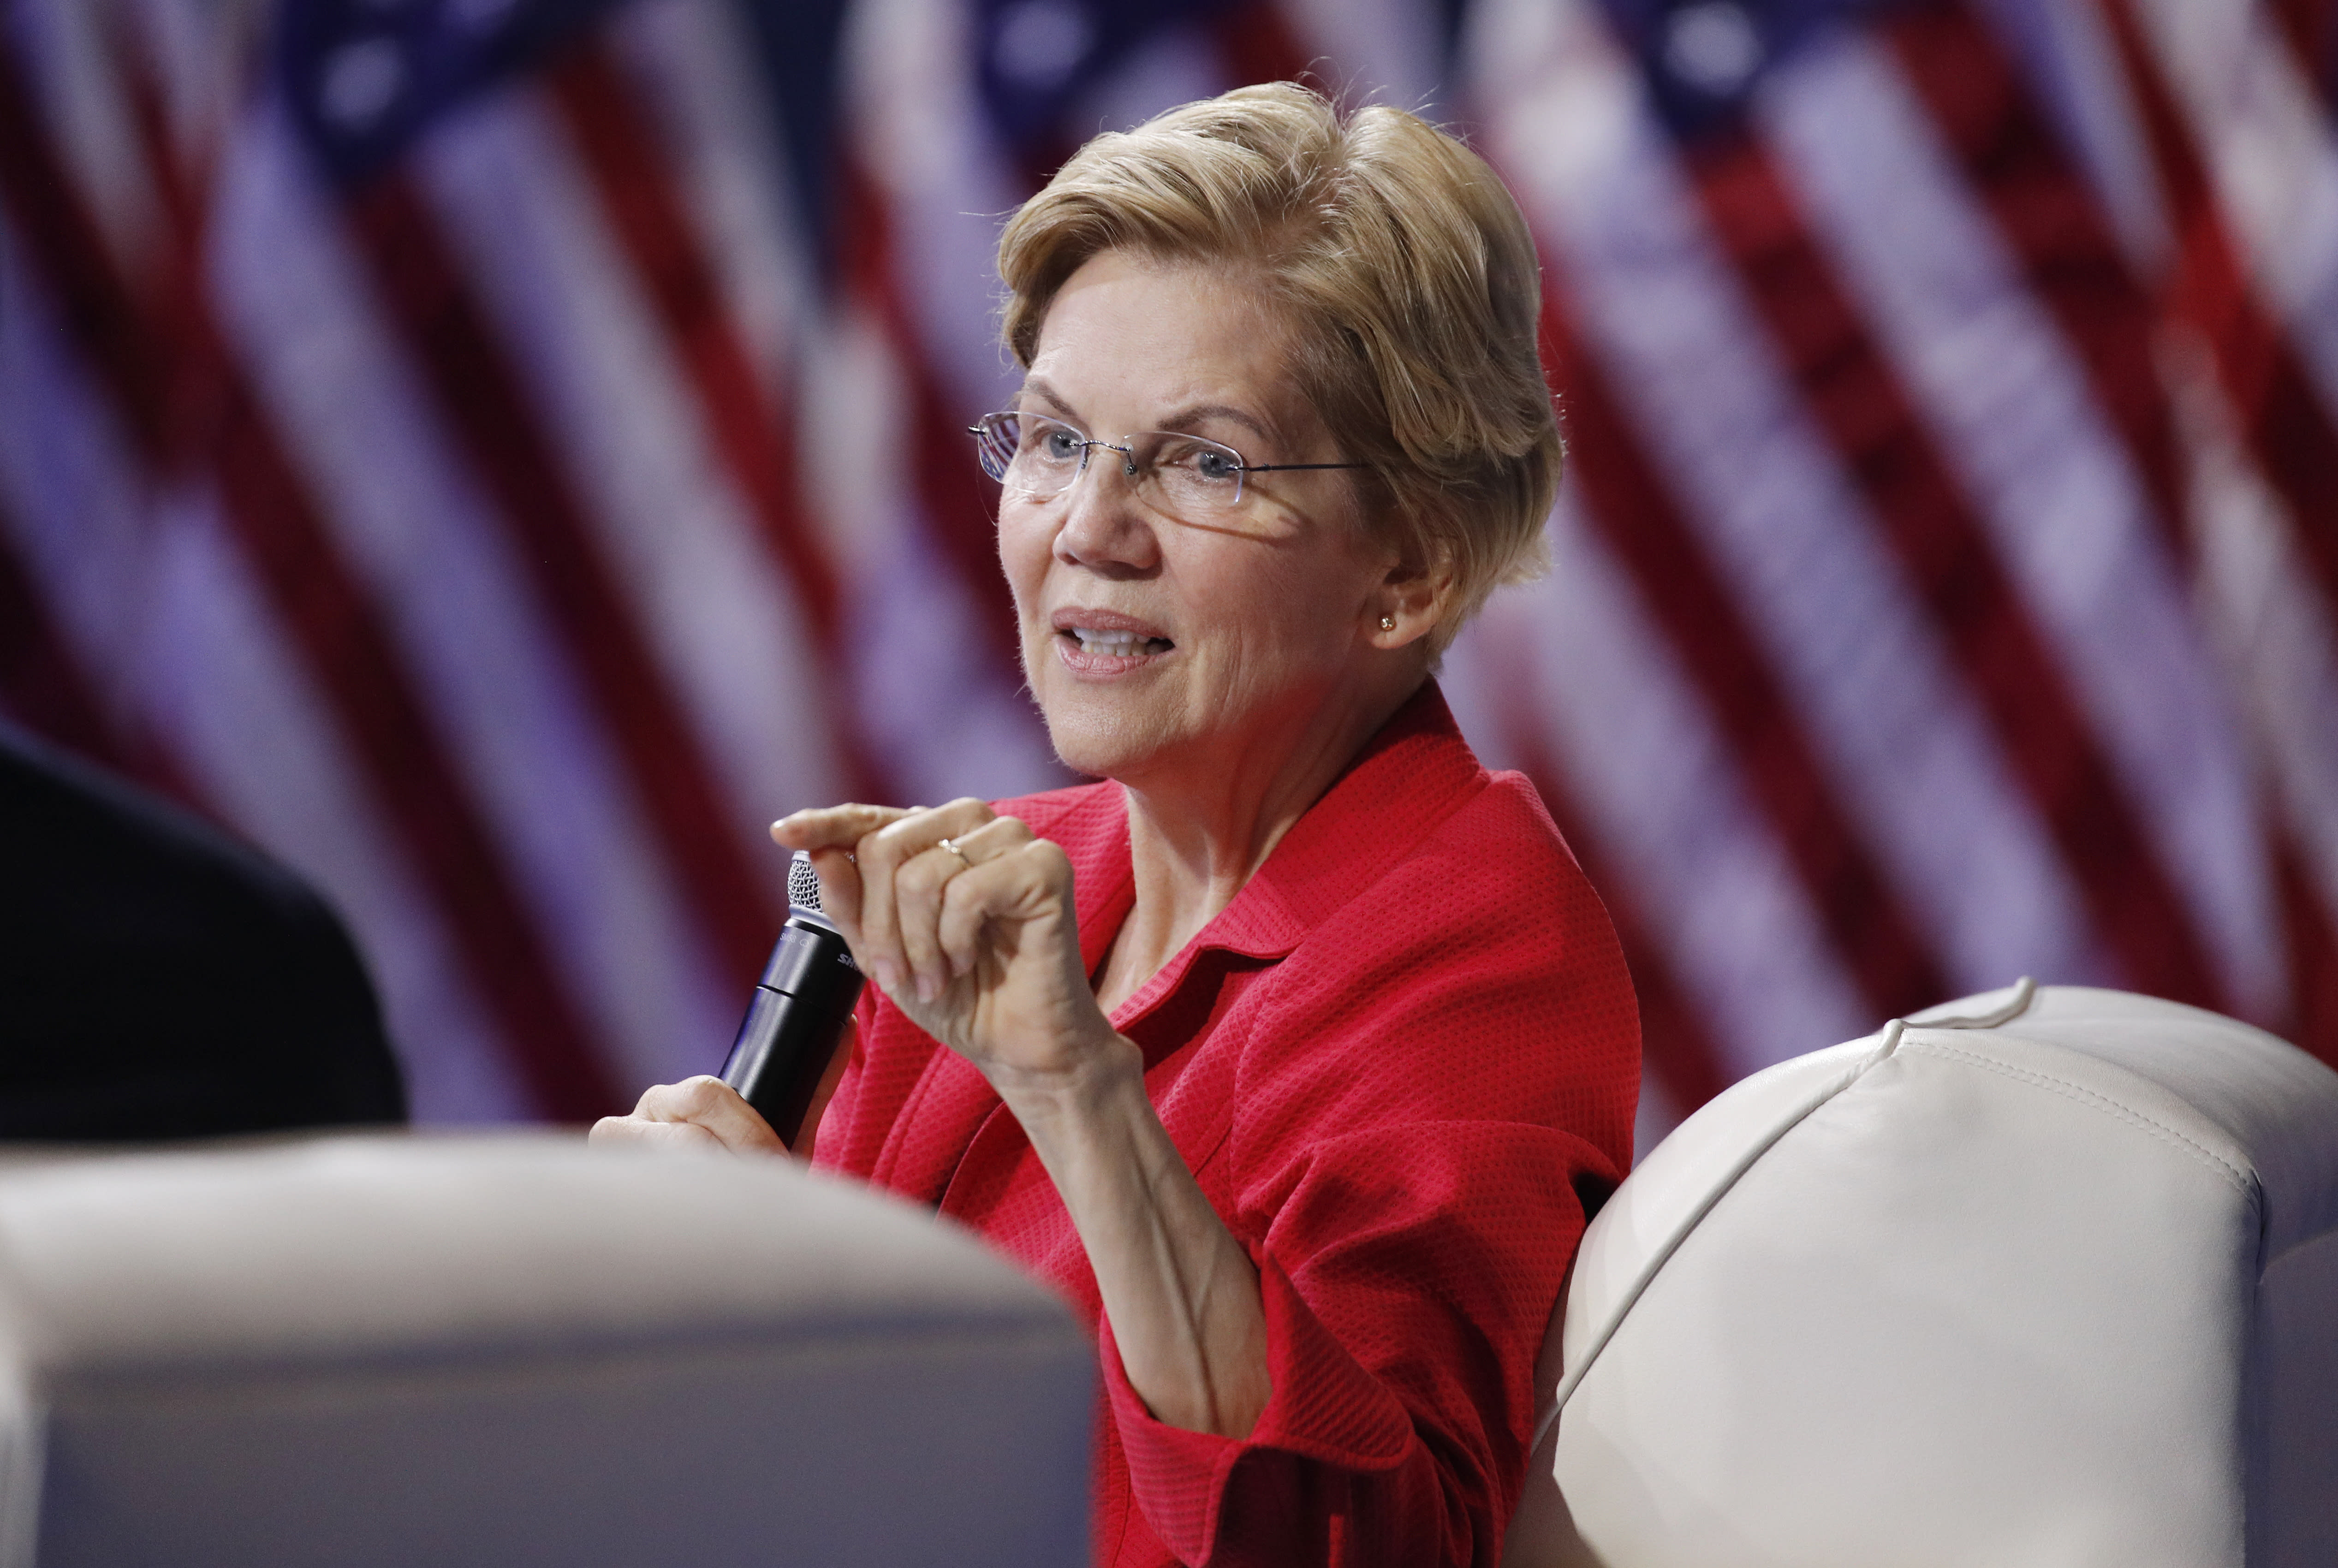 Elizabeth Warren talks about losing teaching job over pregnancy